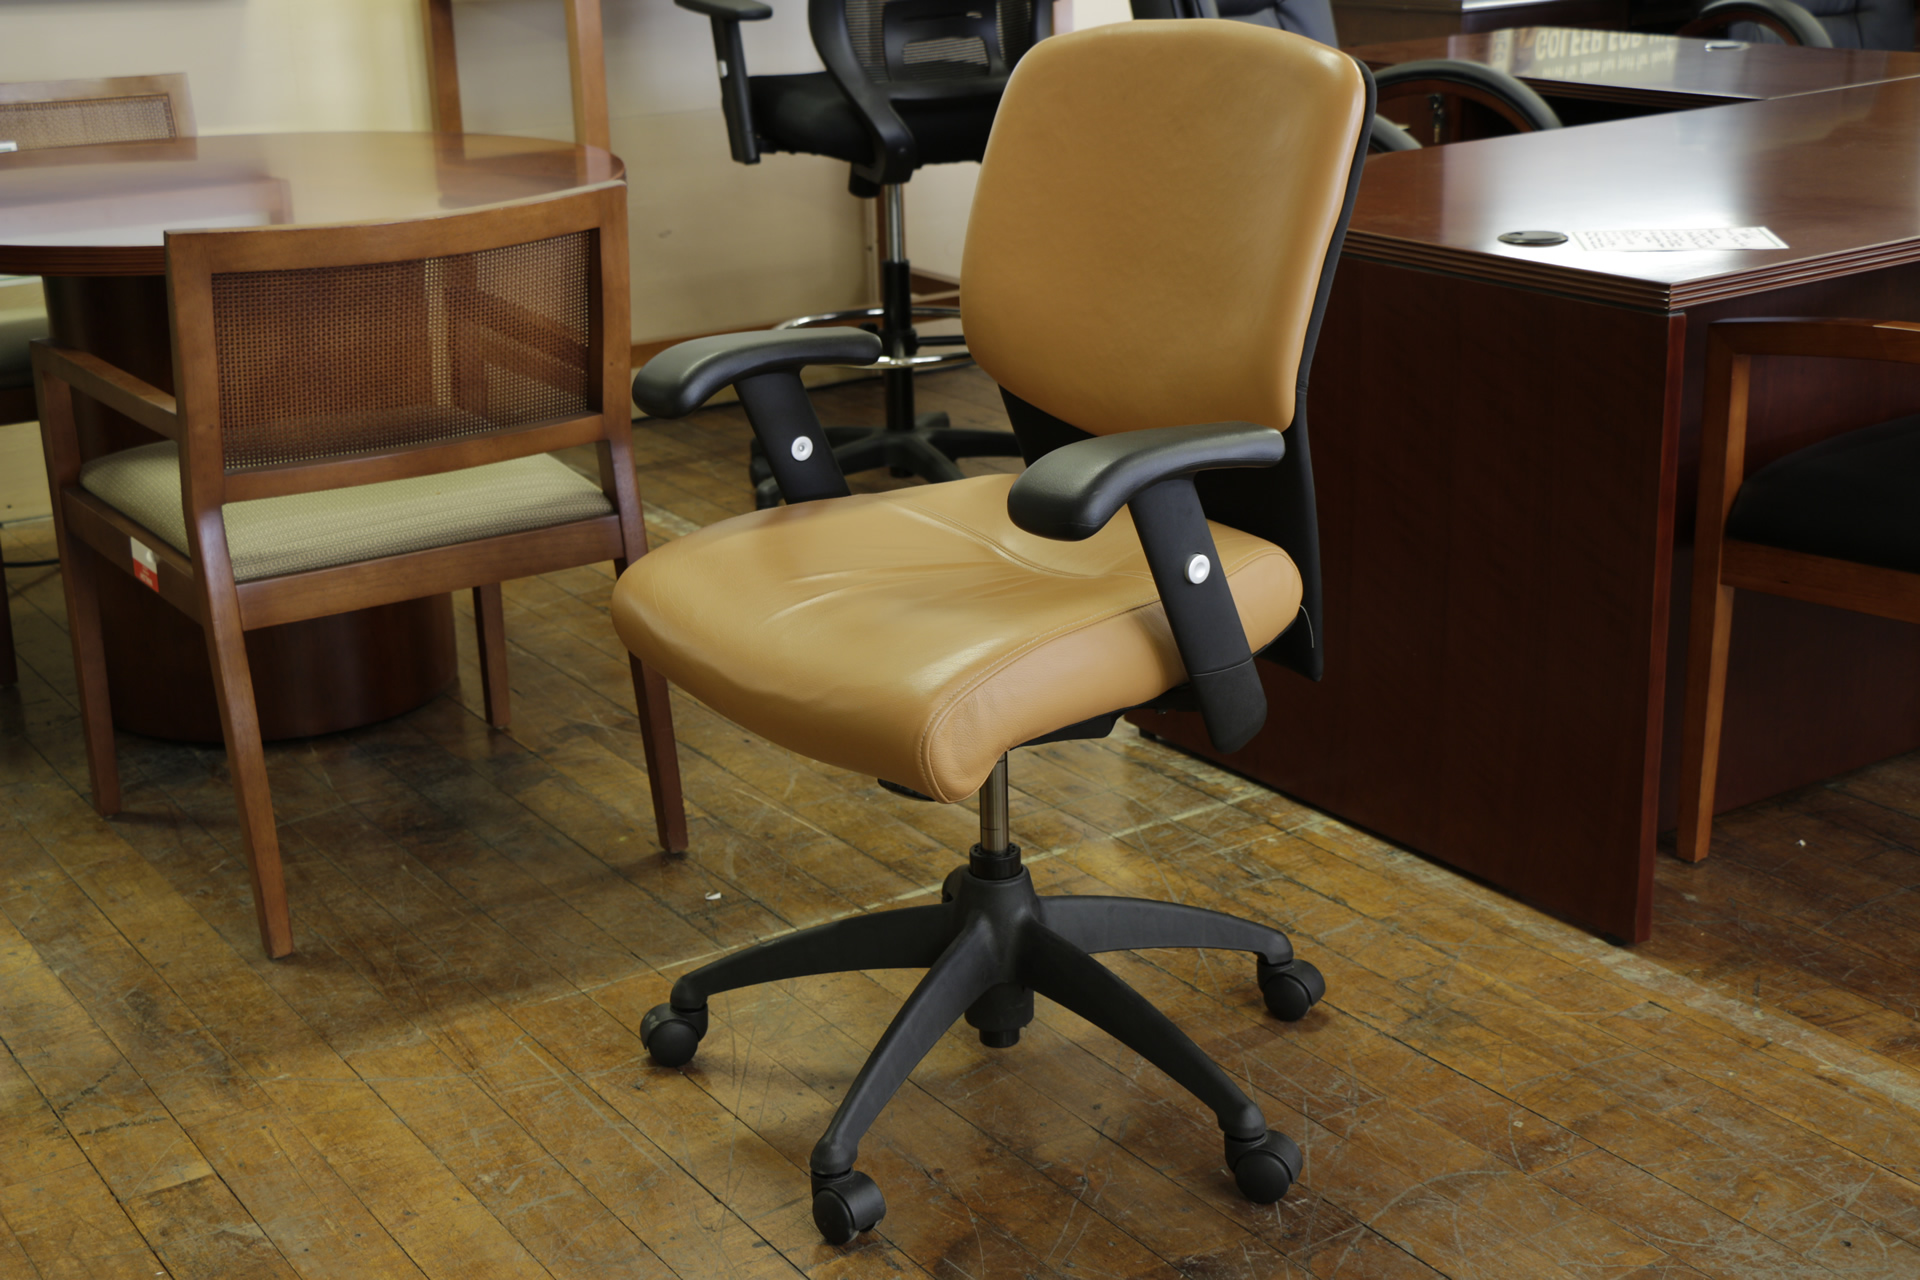 peartreeofficefurniture_peartreeofficefurniture_mg_3822.jpg